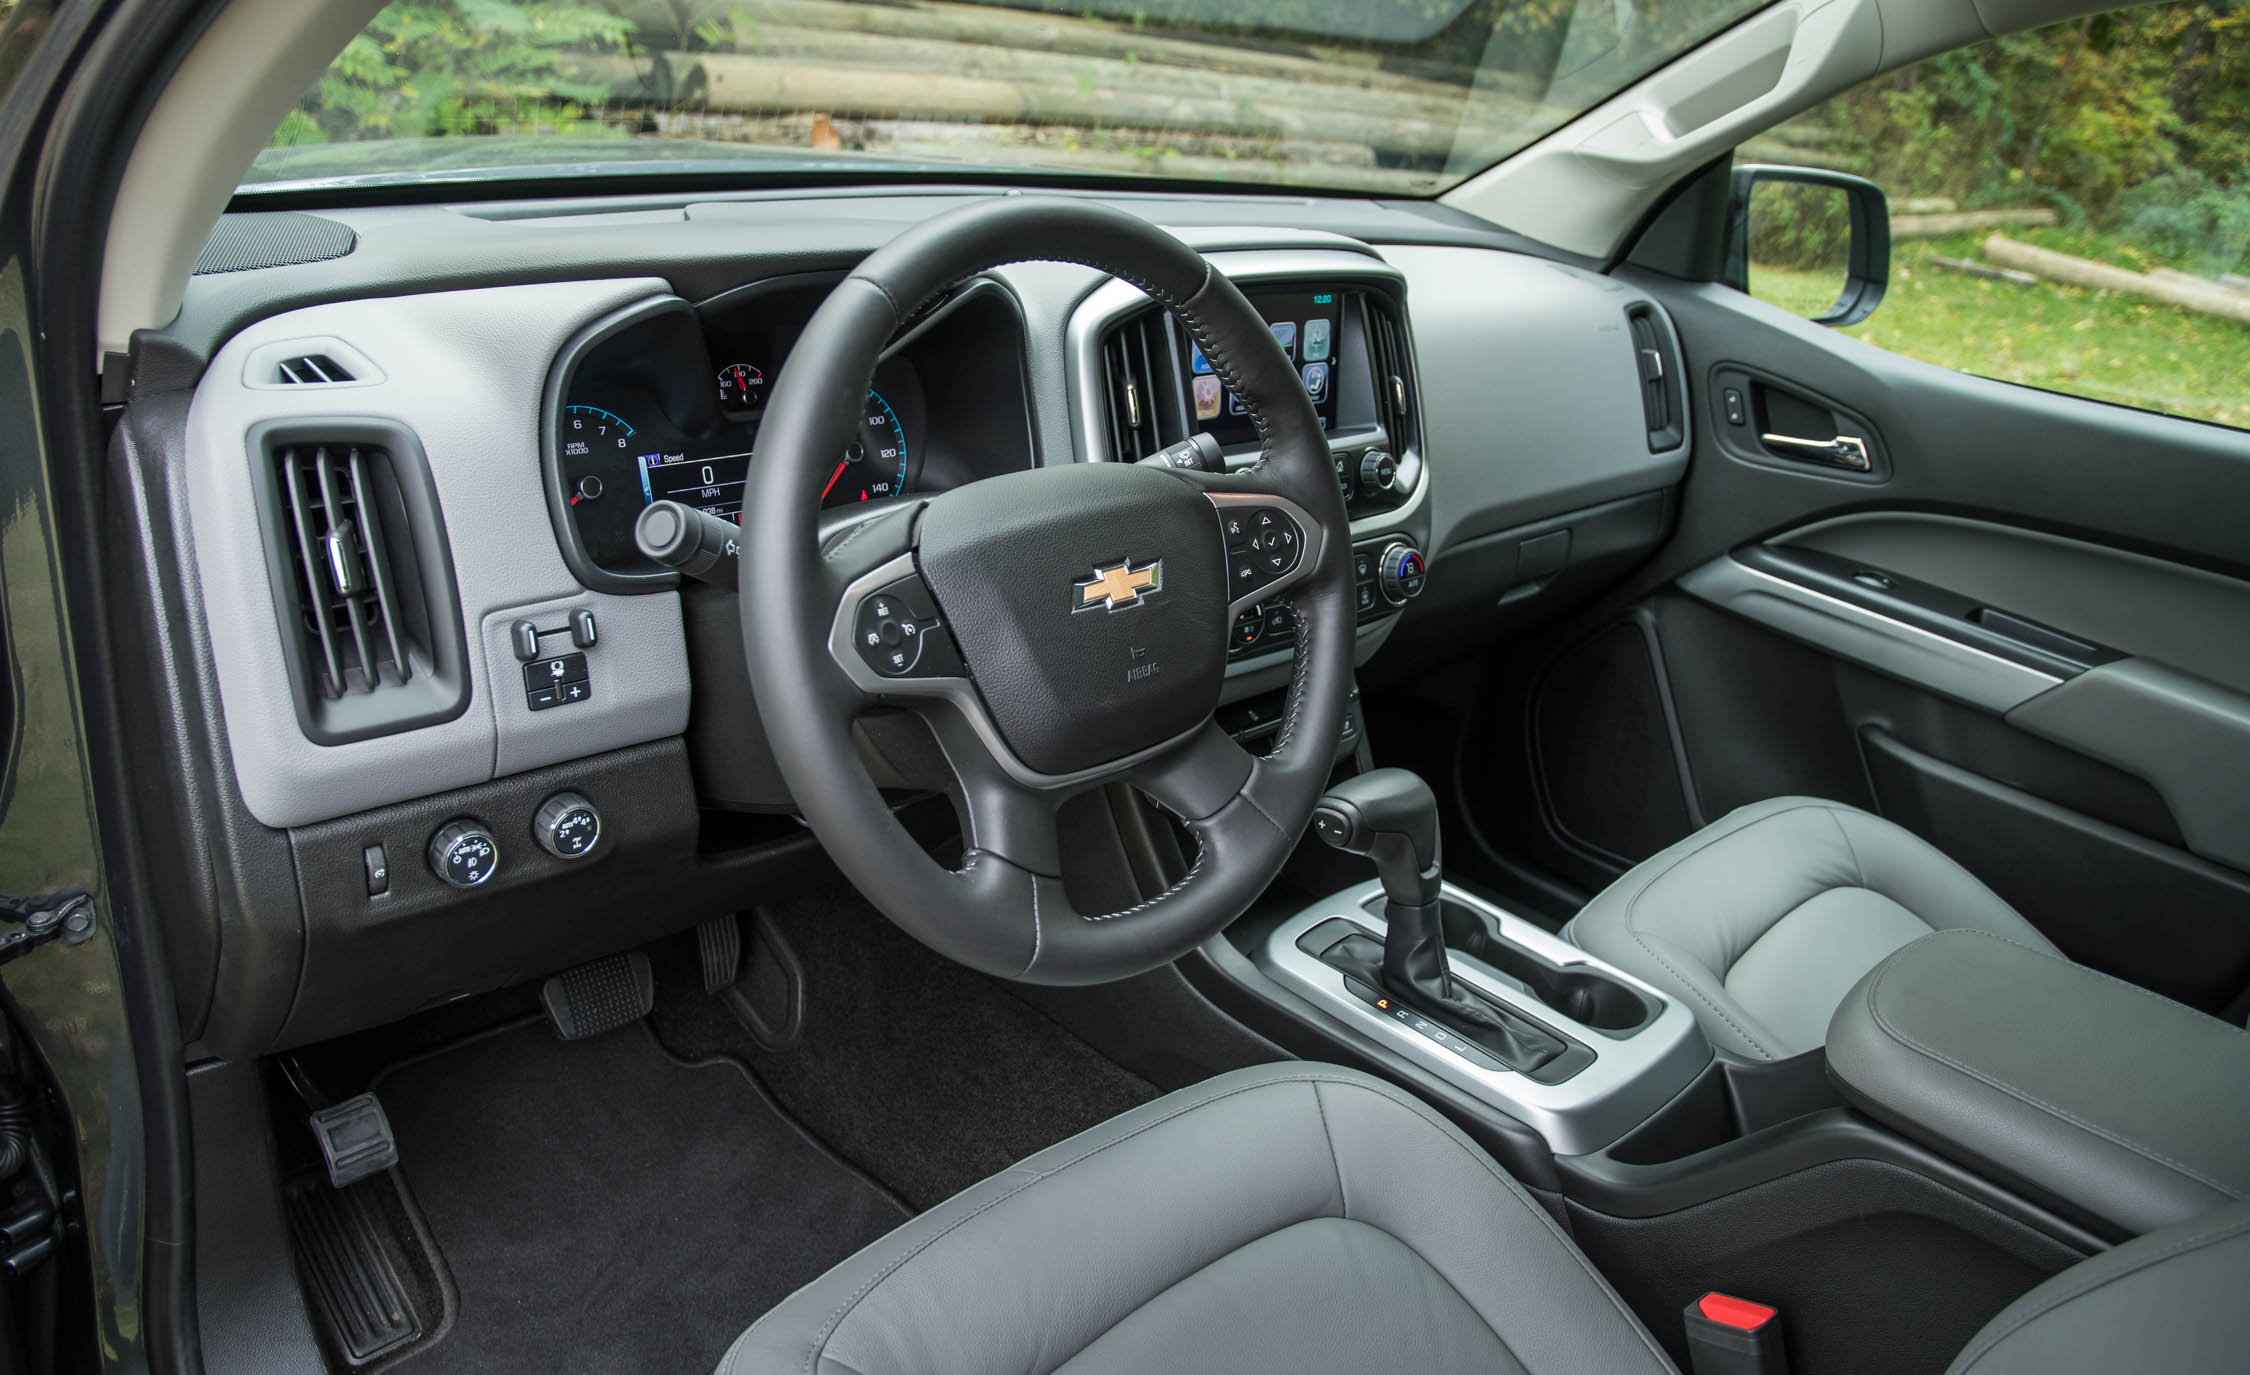 2017 Chevrolet Colorado LT Interior Cockpit Steering (Photo 28 of 41)